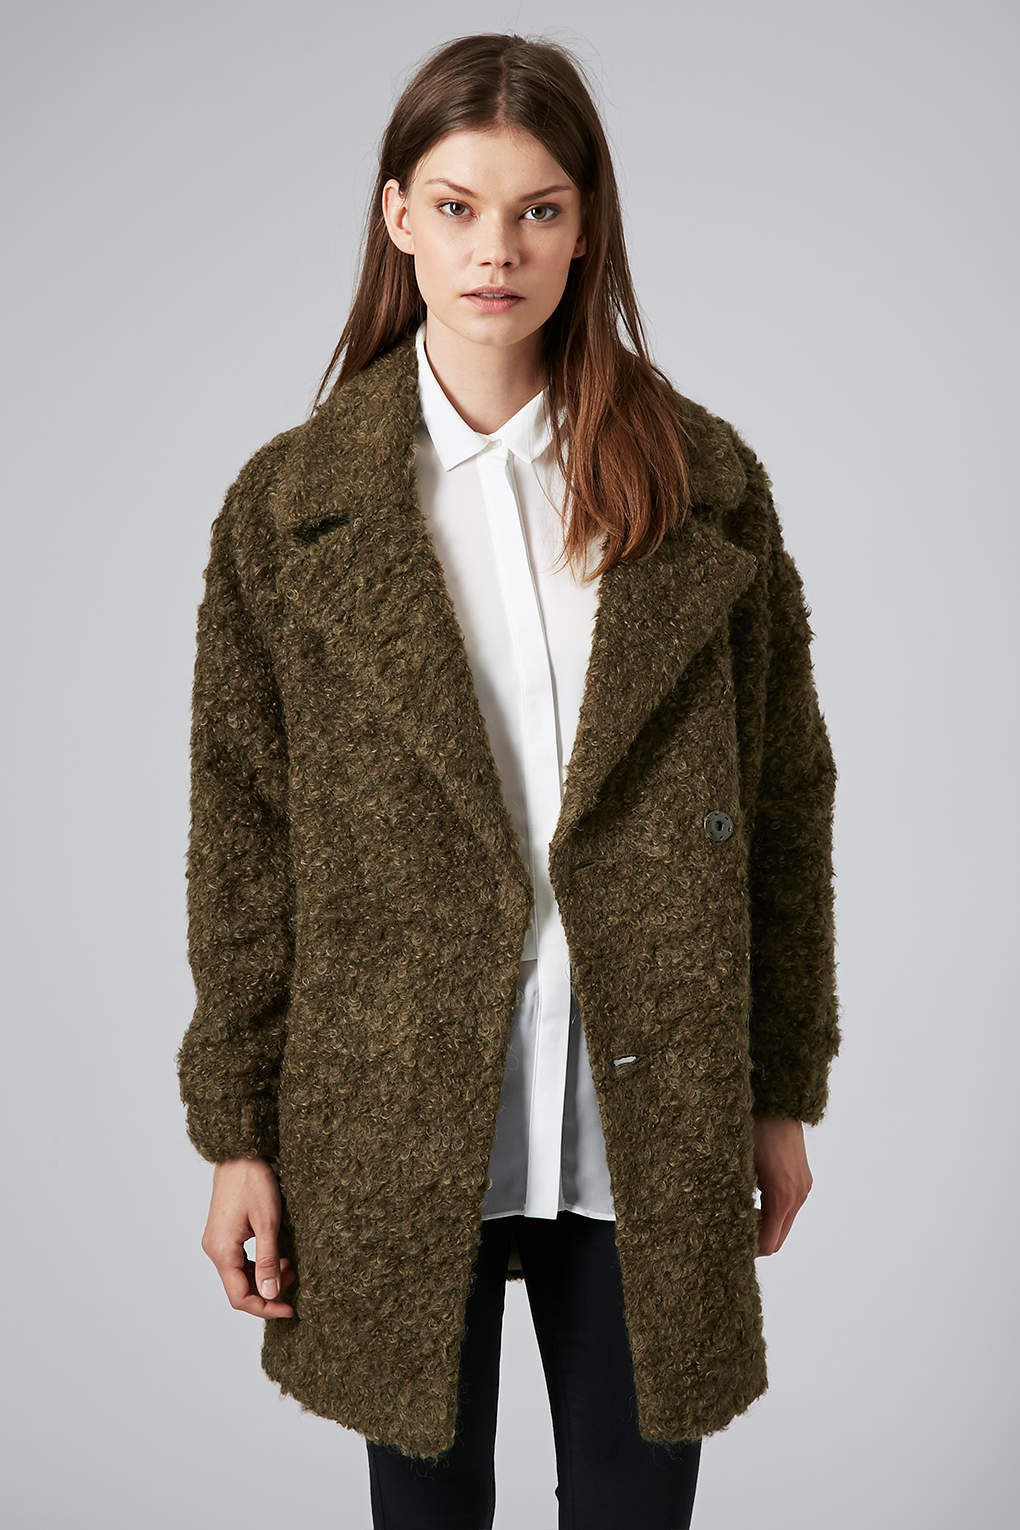 Topshop Womens Slouchy Mohair Boyfriend Coat Olive in Natural | Lyst